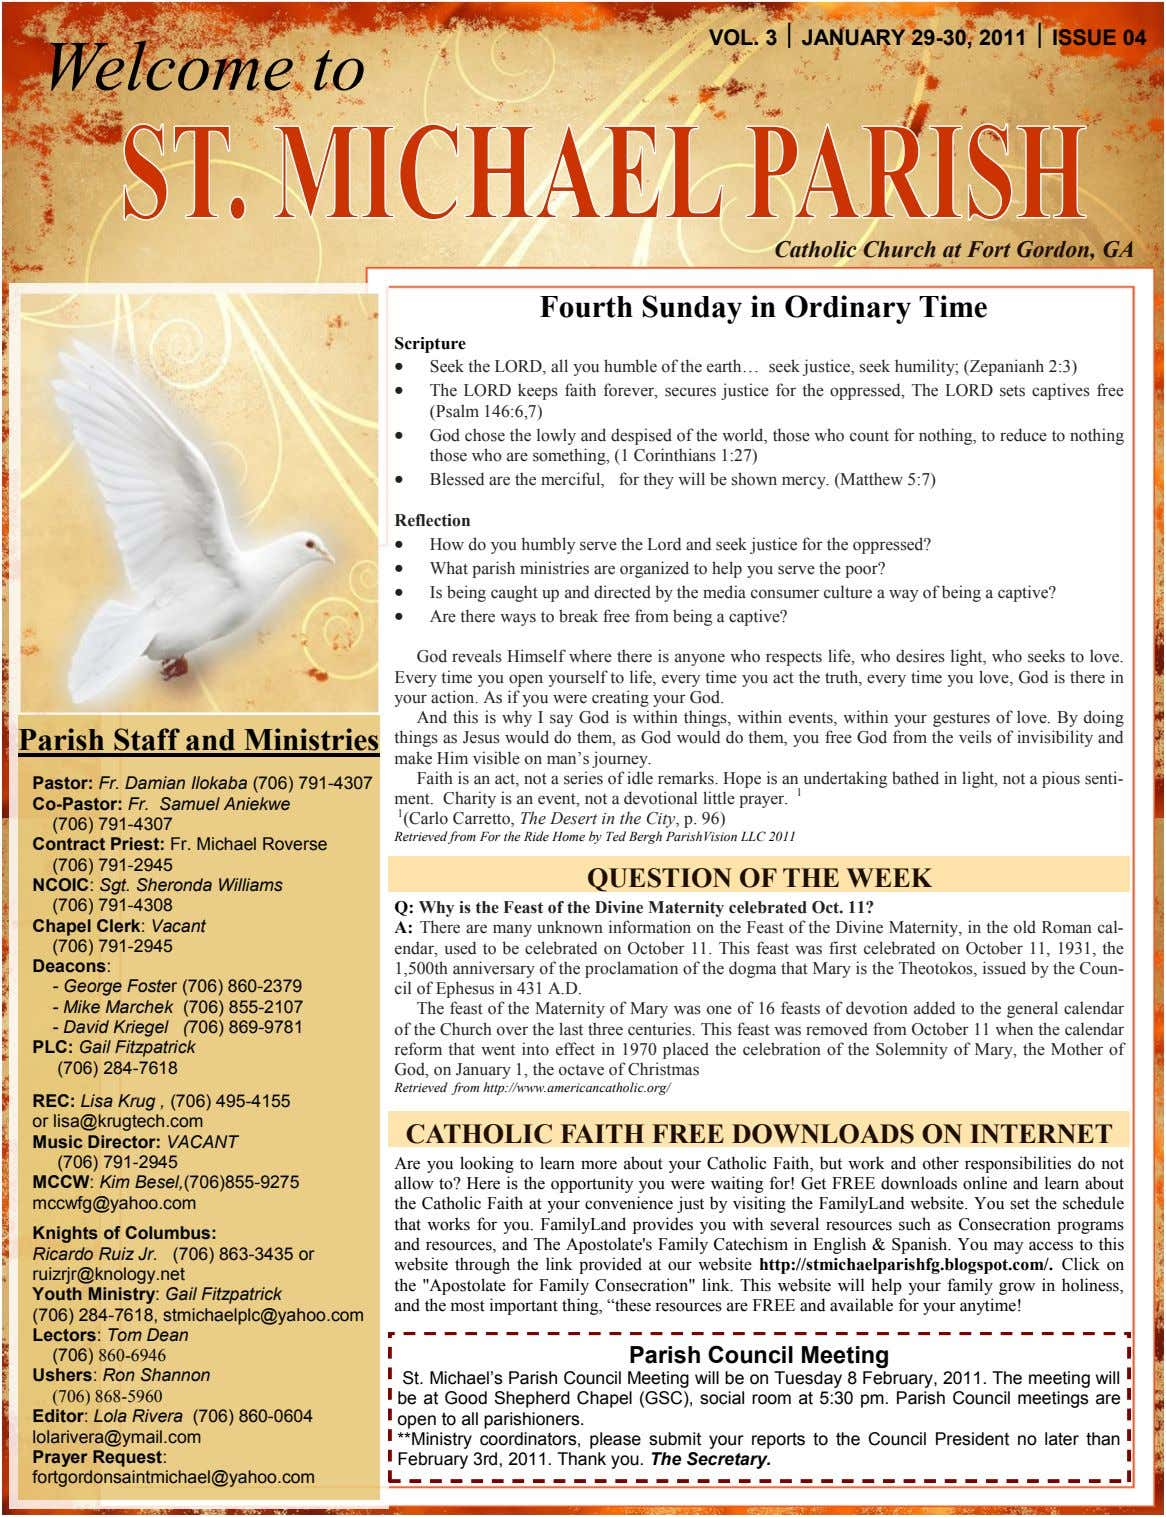 VOL. 3  JANUARY 29-30, 2011  ISSUE 04 Welcome to Catholic Church at Fort